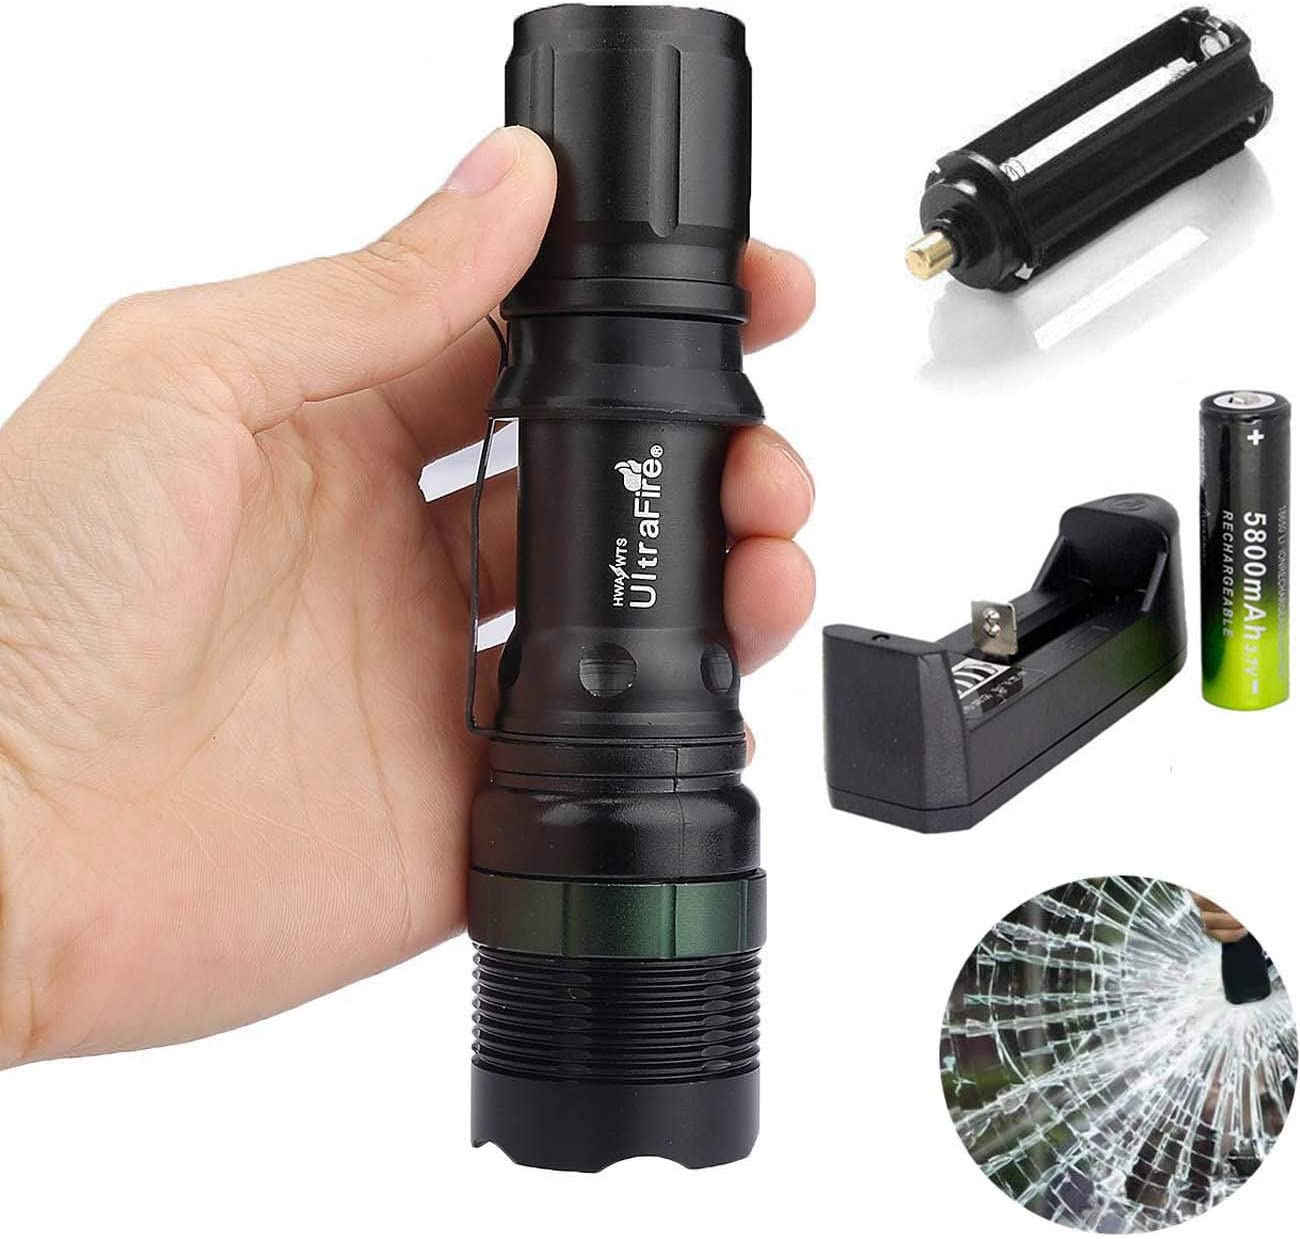 Charger 18650 Battery Ultrafire Focus Tactical Torch T6 LED 50000LM Flashlight